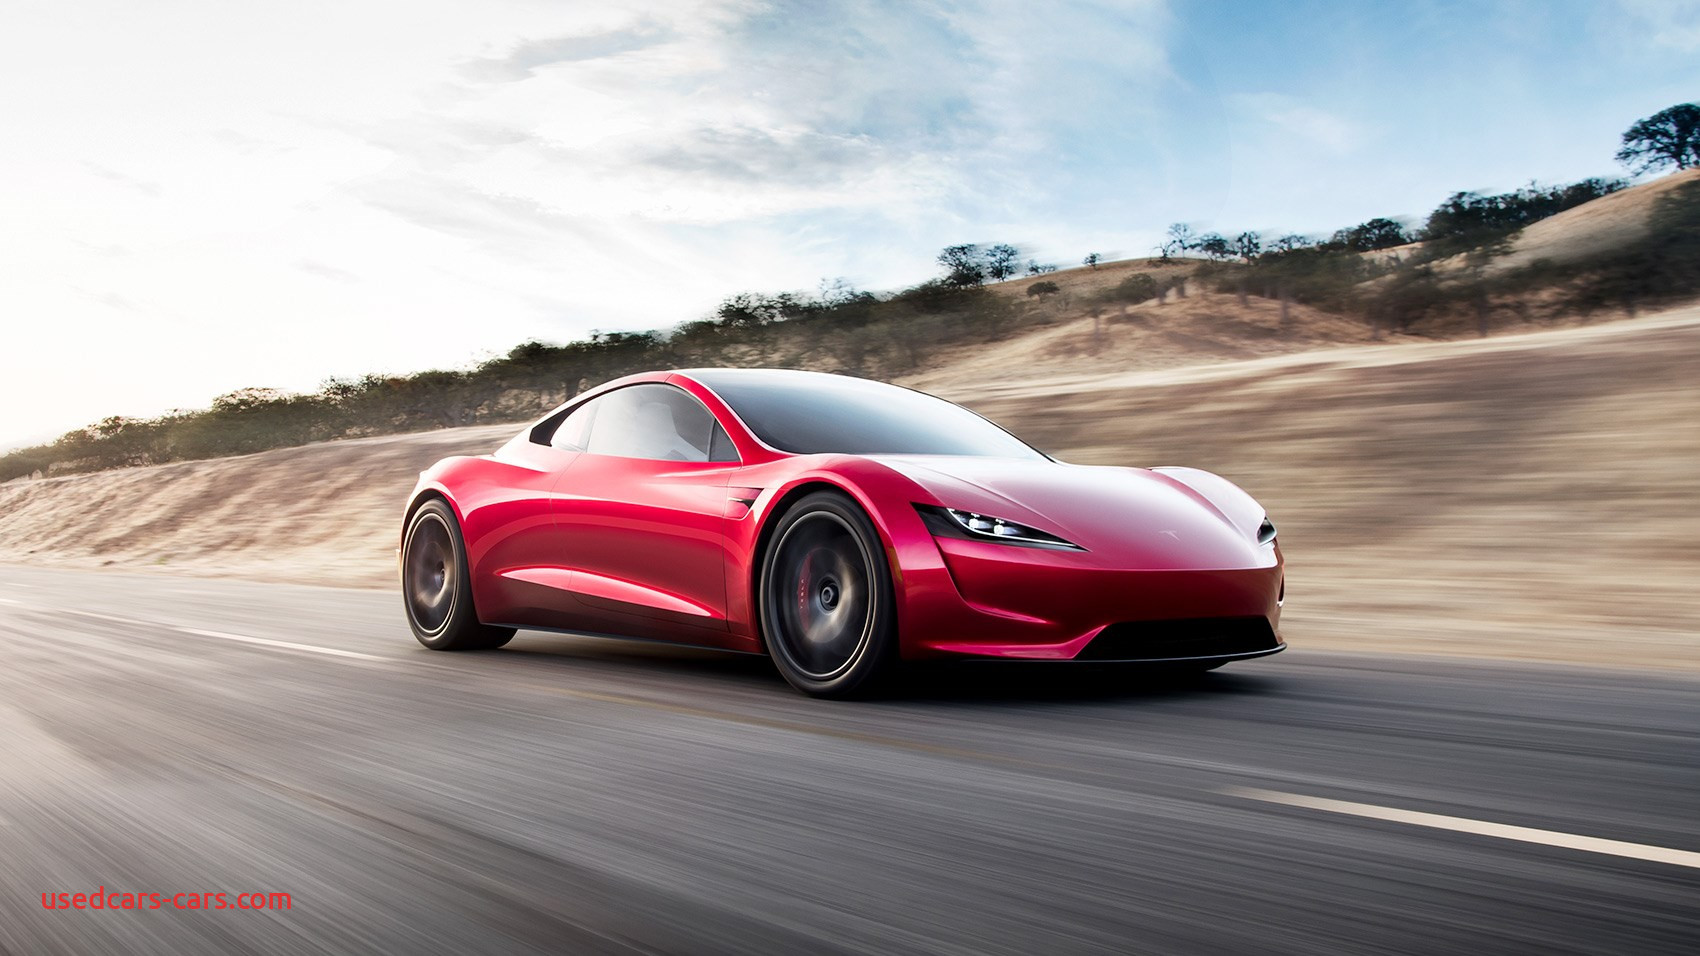 Where Tesla Car From Inspirational New Tesla Roadster Electric Hypercar Spotted On the Road